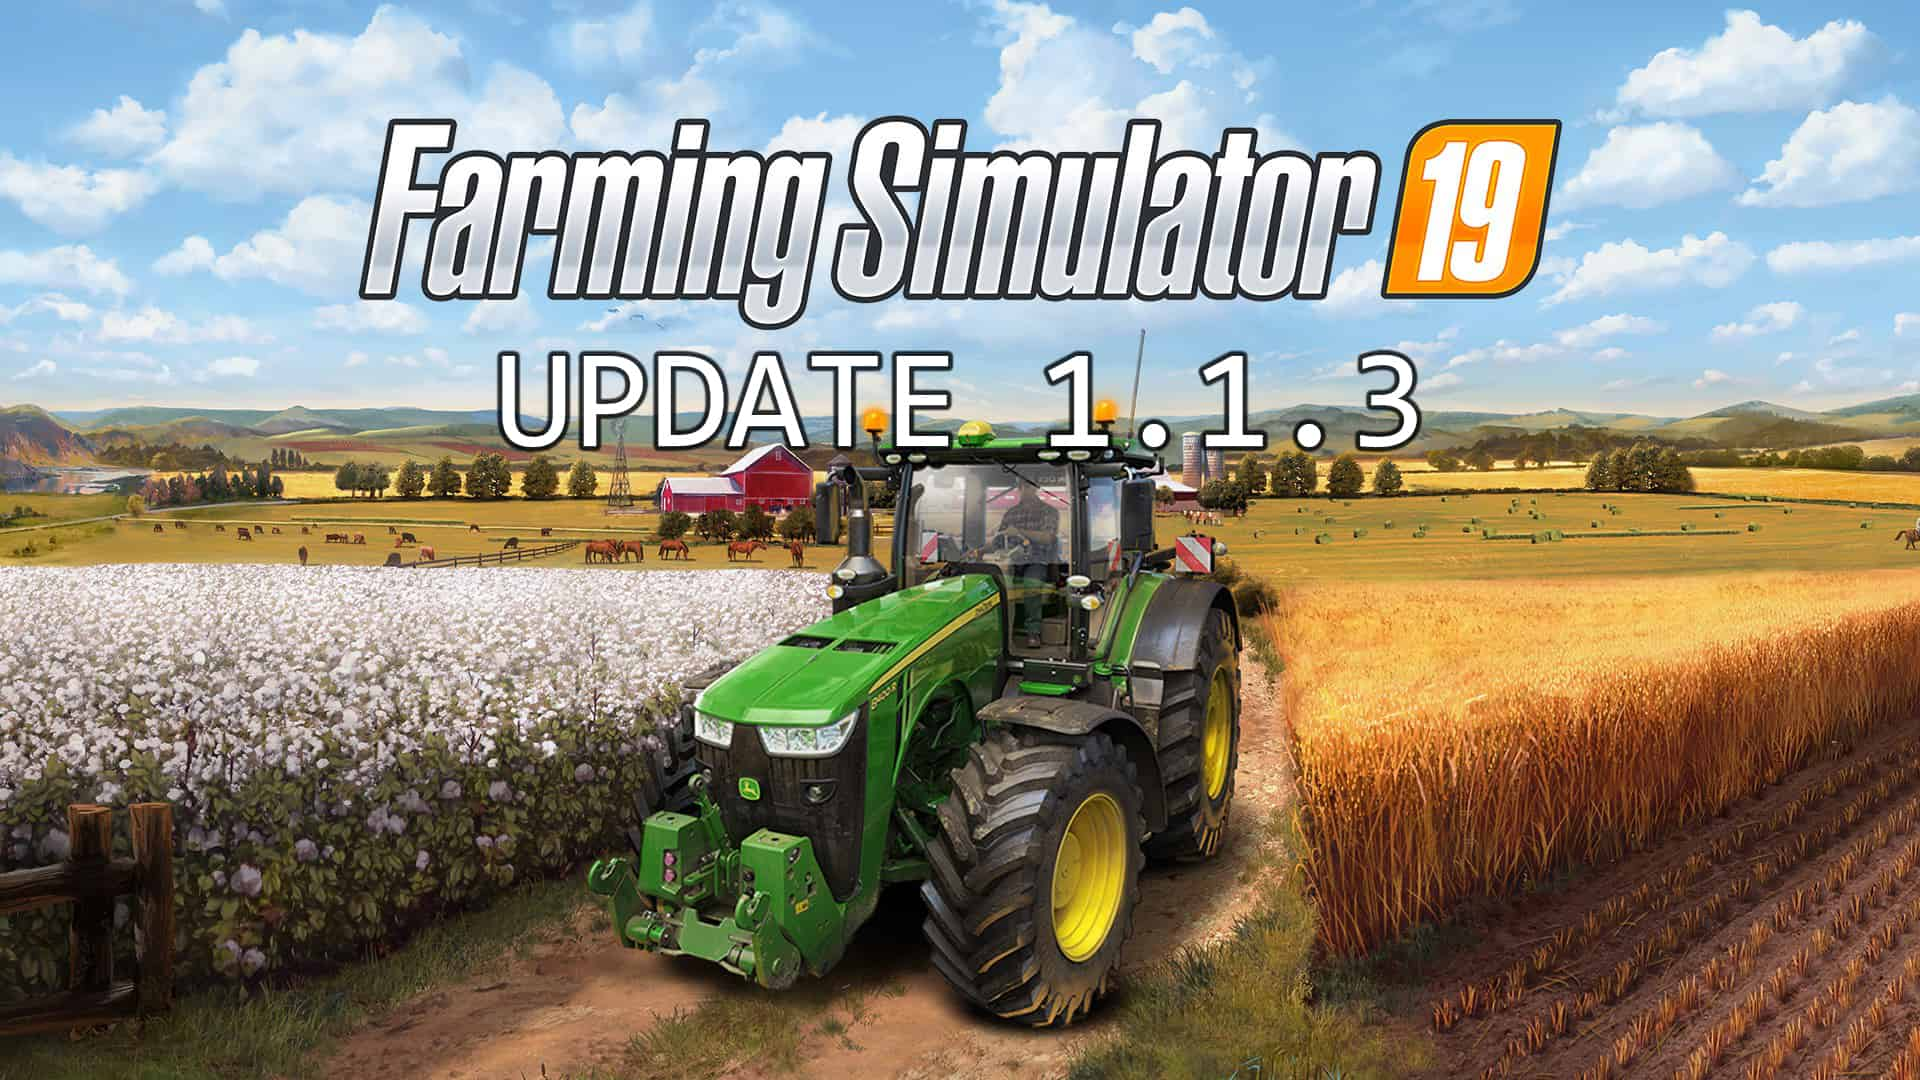 fs 19 game file download for android